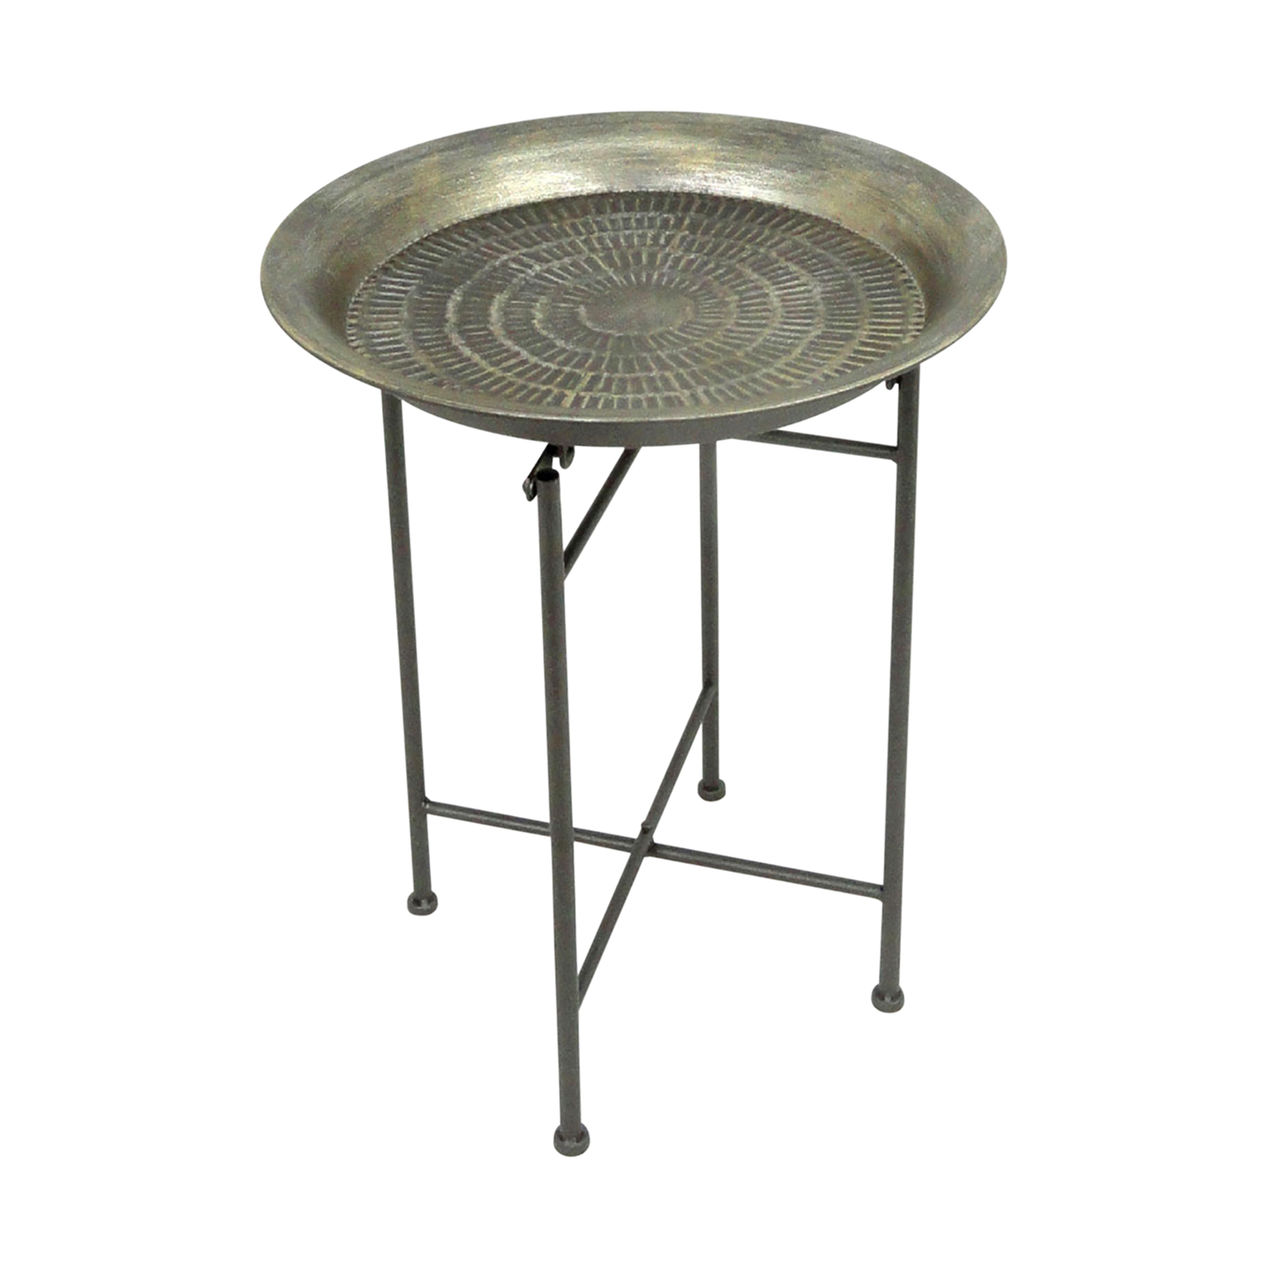 round metal accent table home marble coffee target sofa edmonton navy blue outdoor folding chairs meyda tiffany lamp bases ideas glass tables living room large silver wall clock